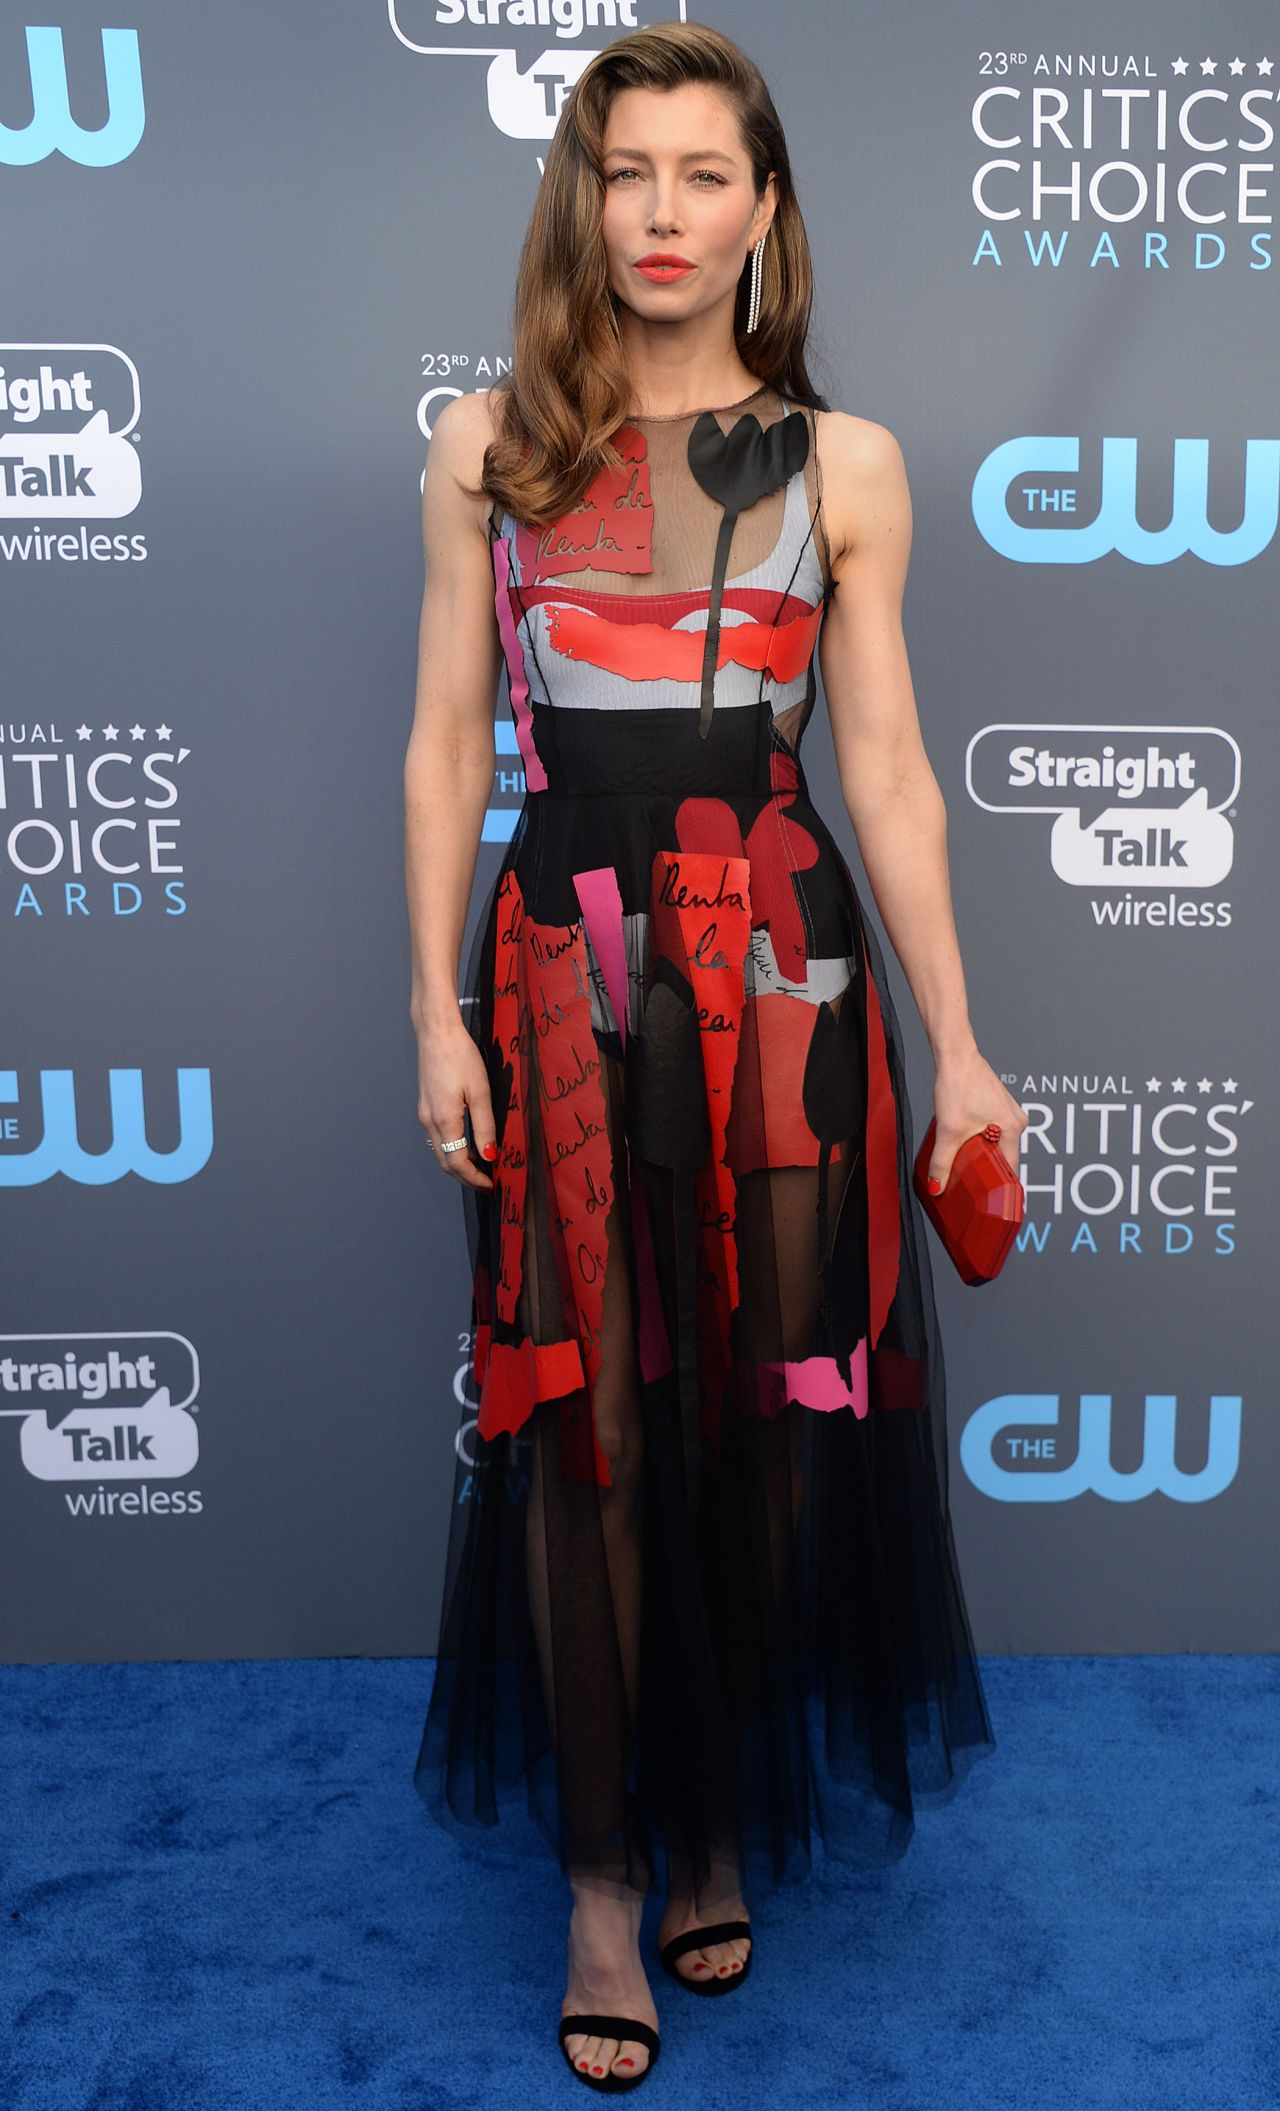 http://celebmafia.com/wp-content/uploads/2018/01/jessica-biel-2018-critics-choice-awards-12.jpg